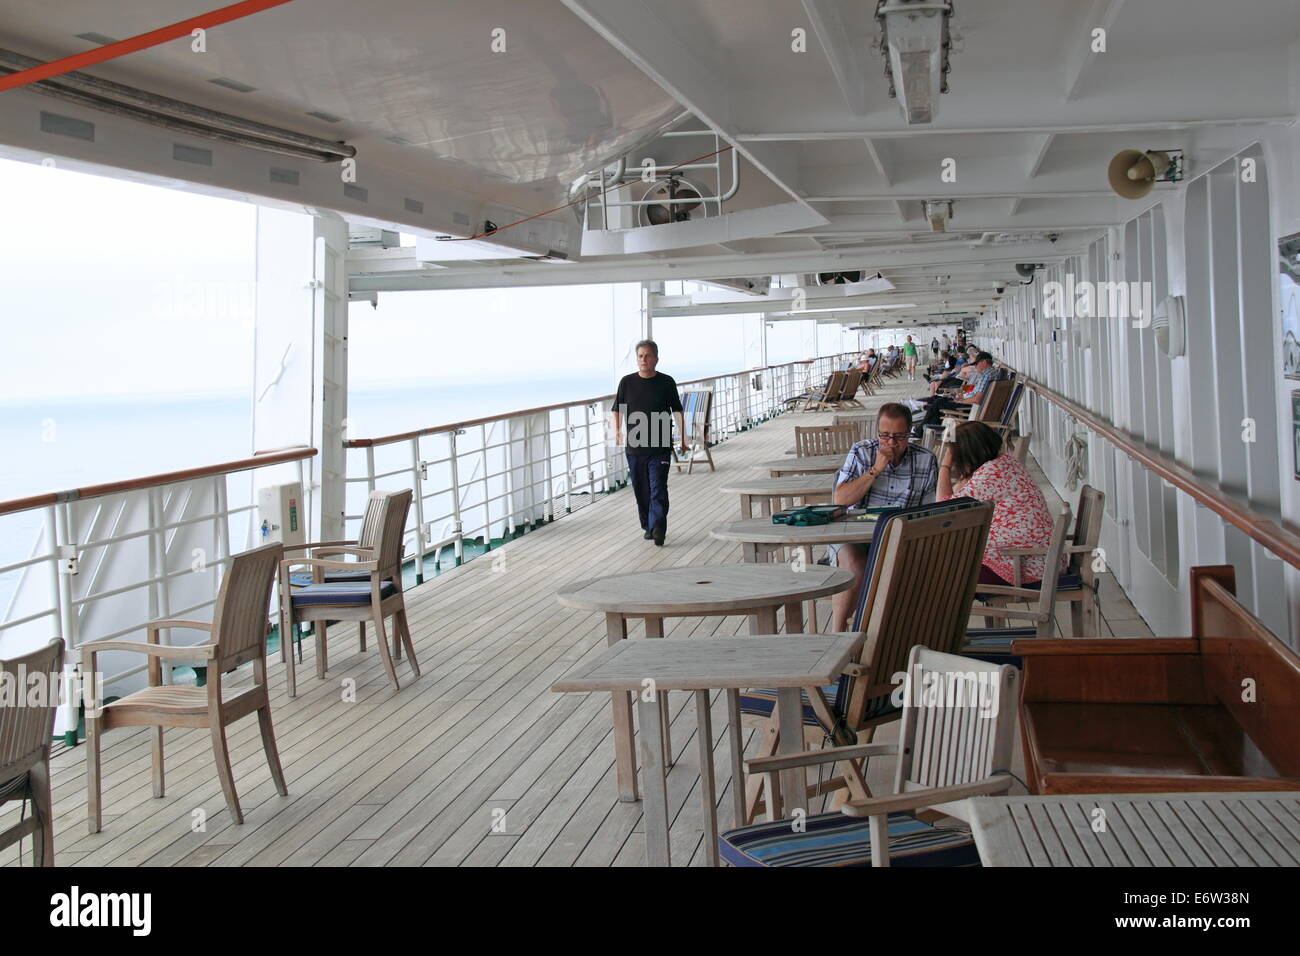 Promenade Deck, P&O Cruises Oriana, Norway 2014 - Stock Image